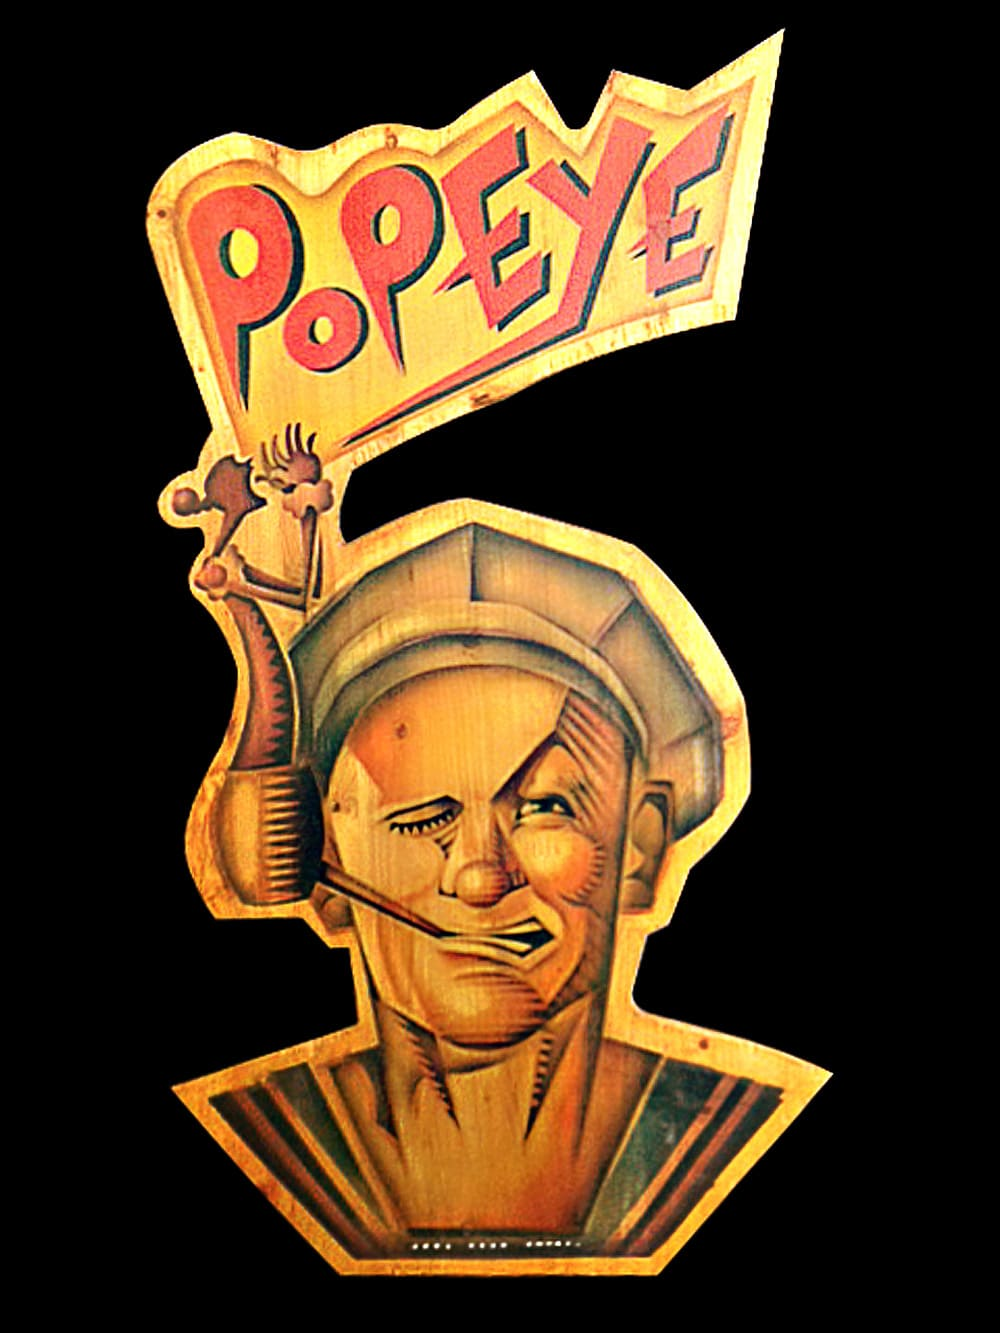 Popeye Tribute Art Show Print 6